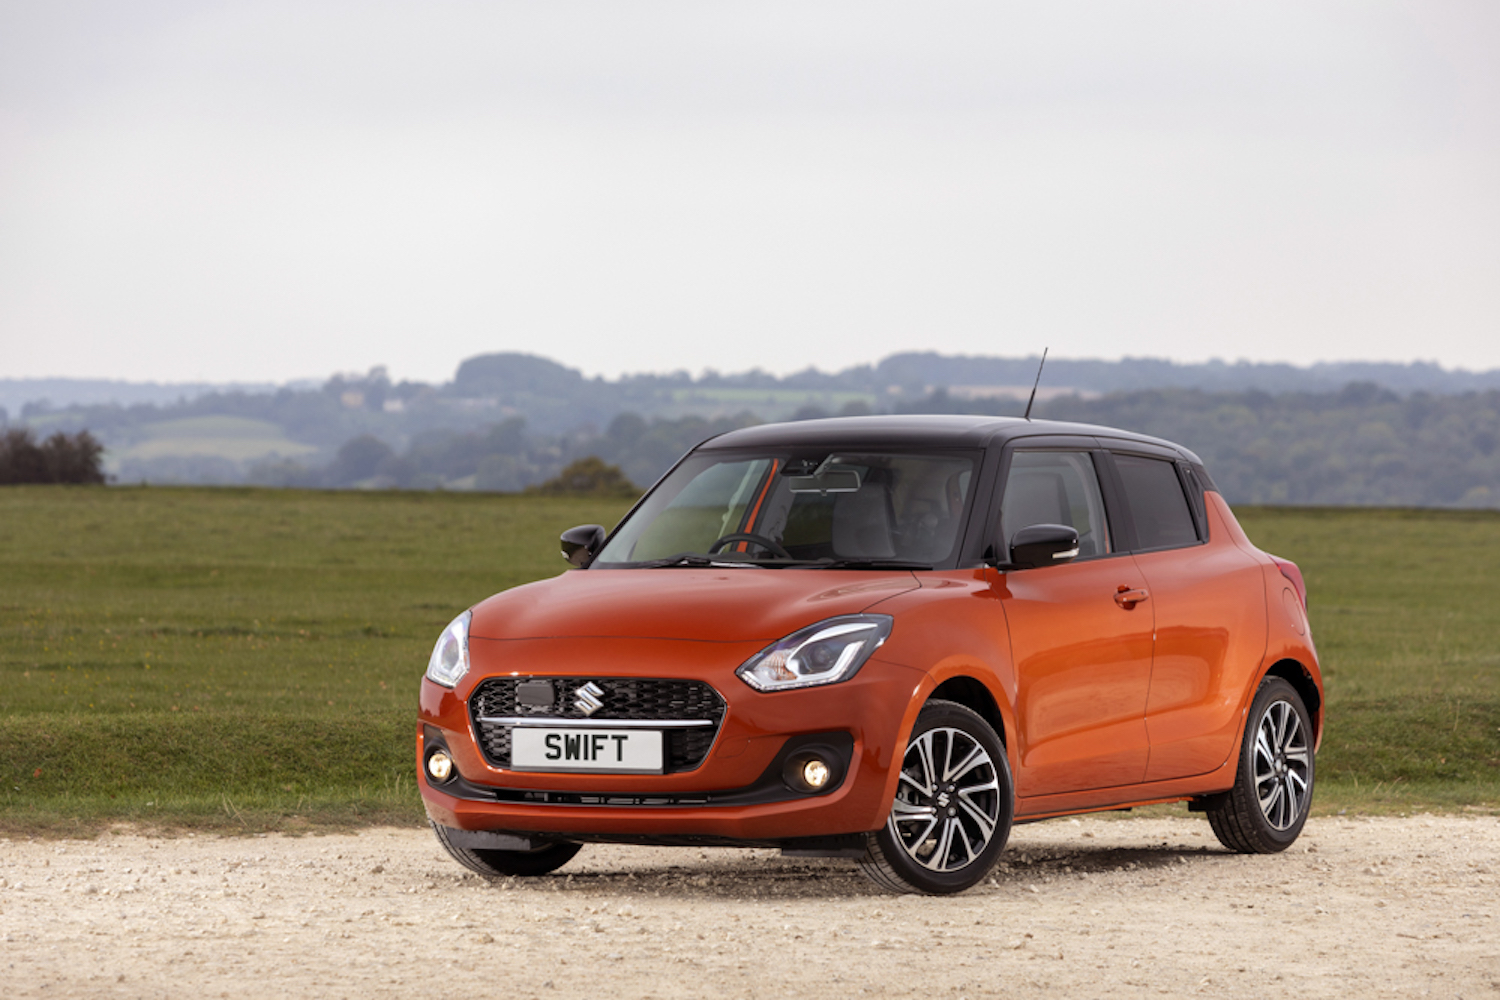 Car News | Suzuki Swift gets yet another update | CompleteCar.ie